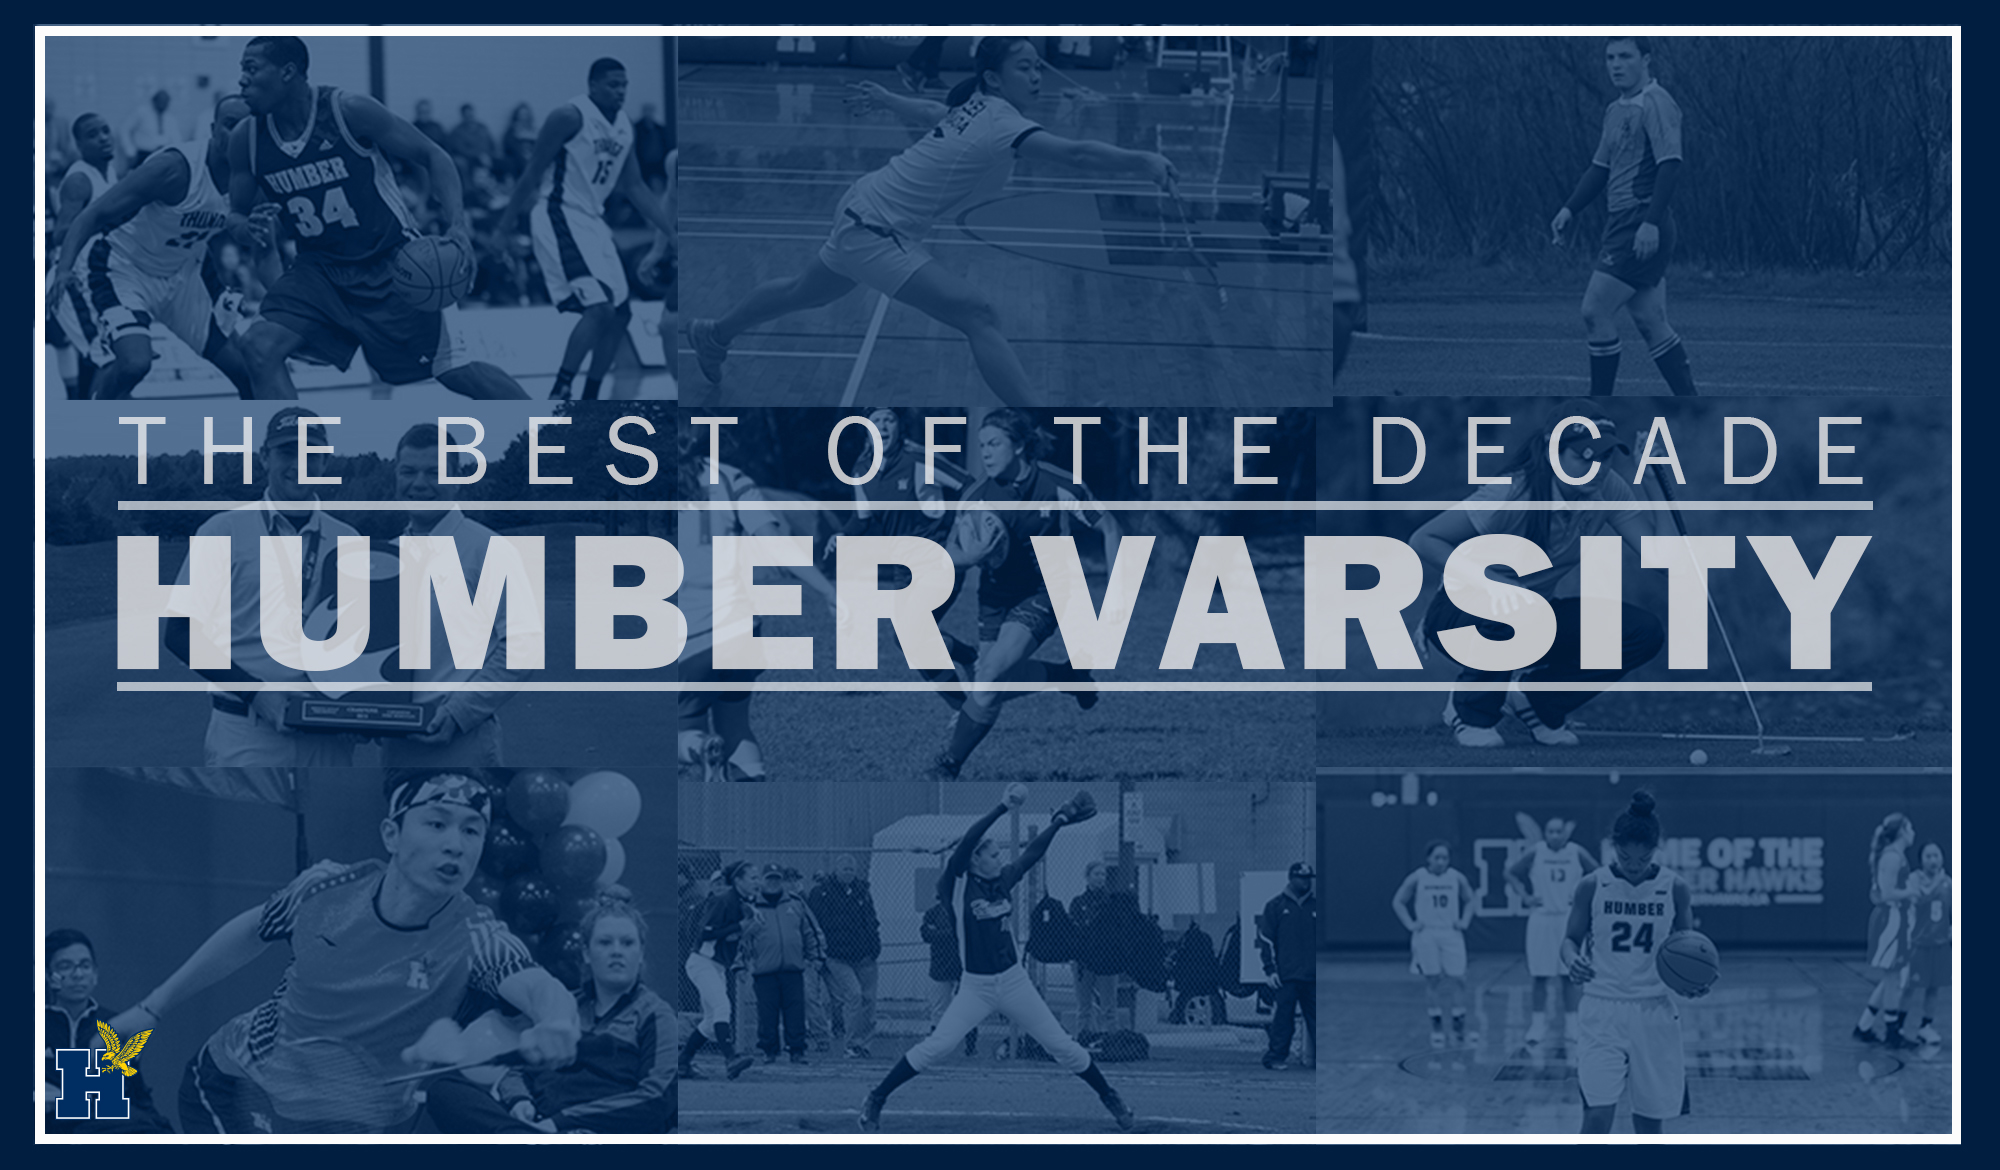 The best of the decade - Humber Varsity